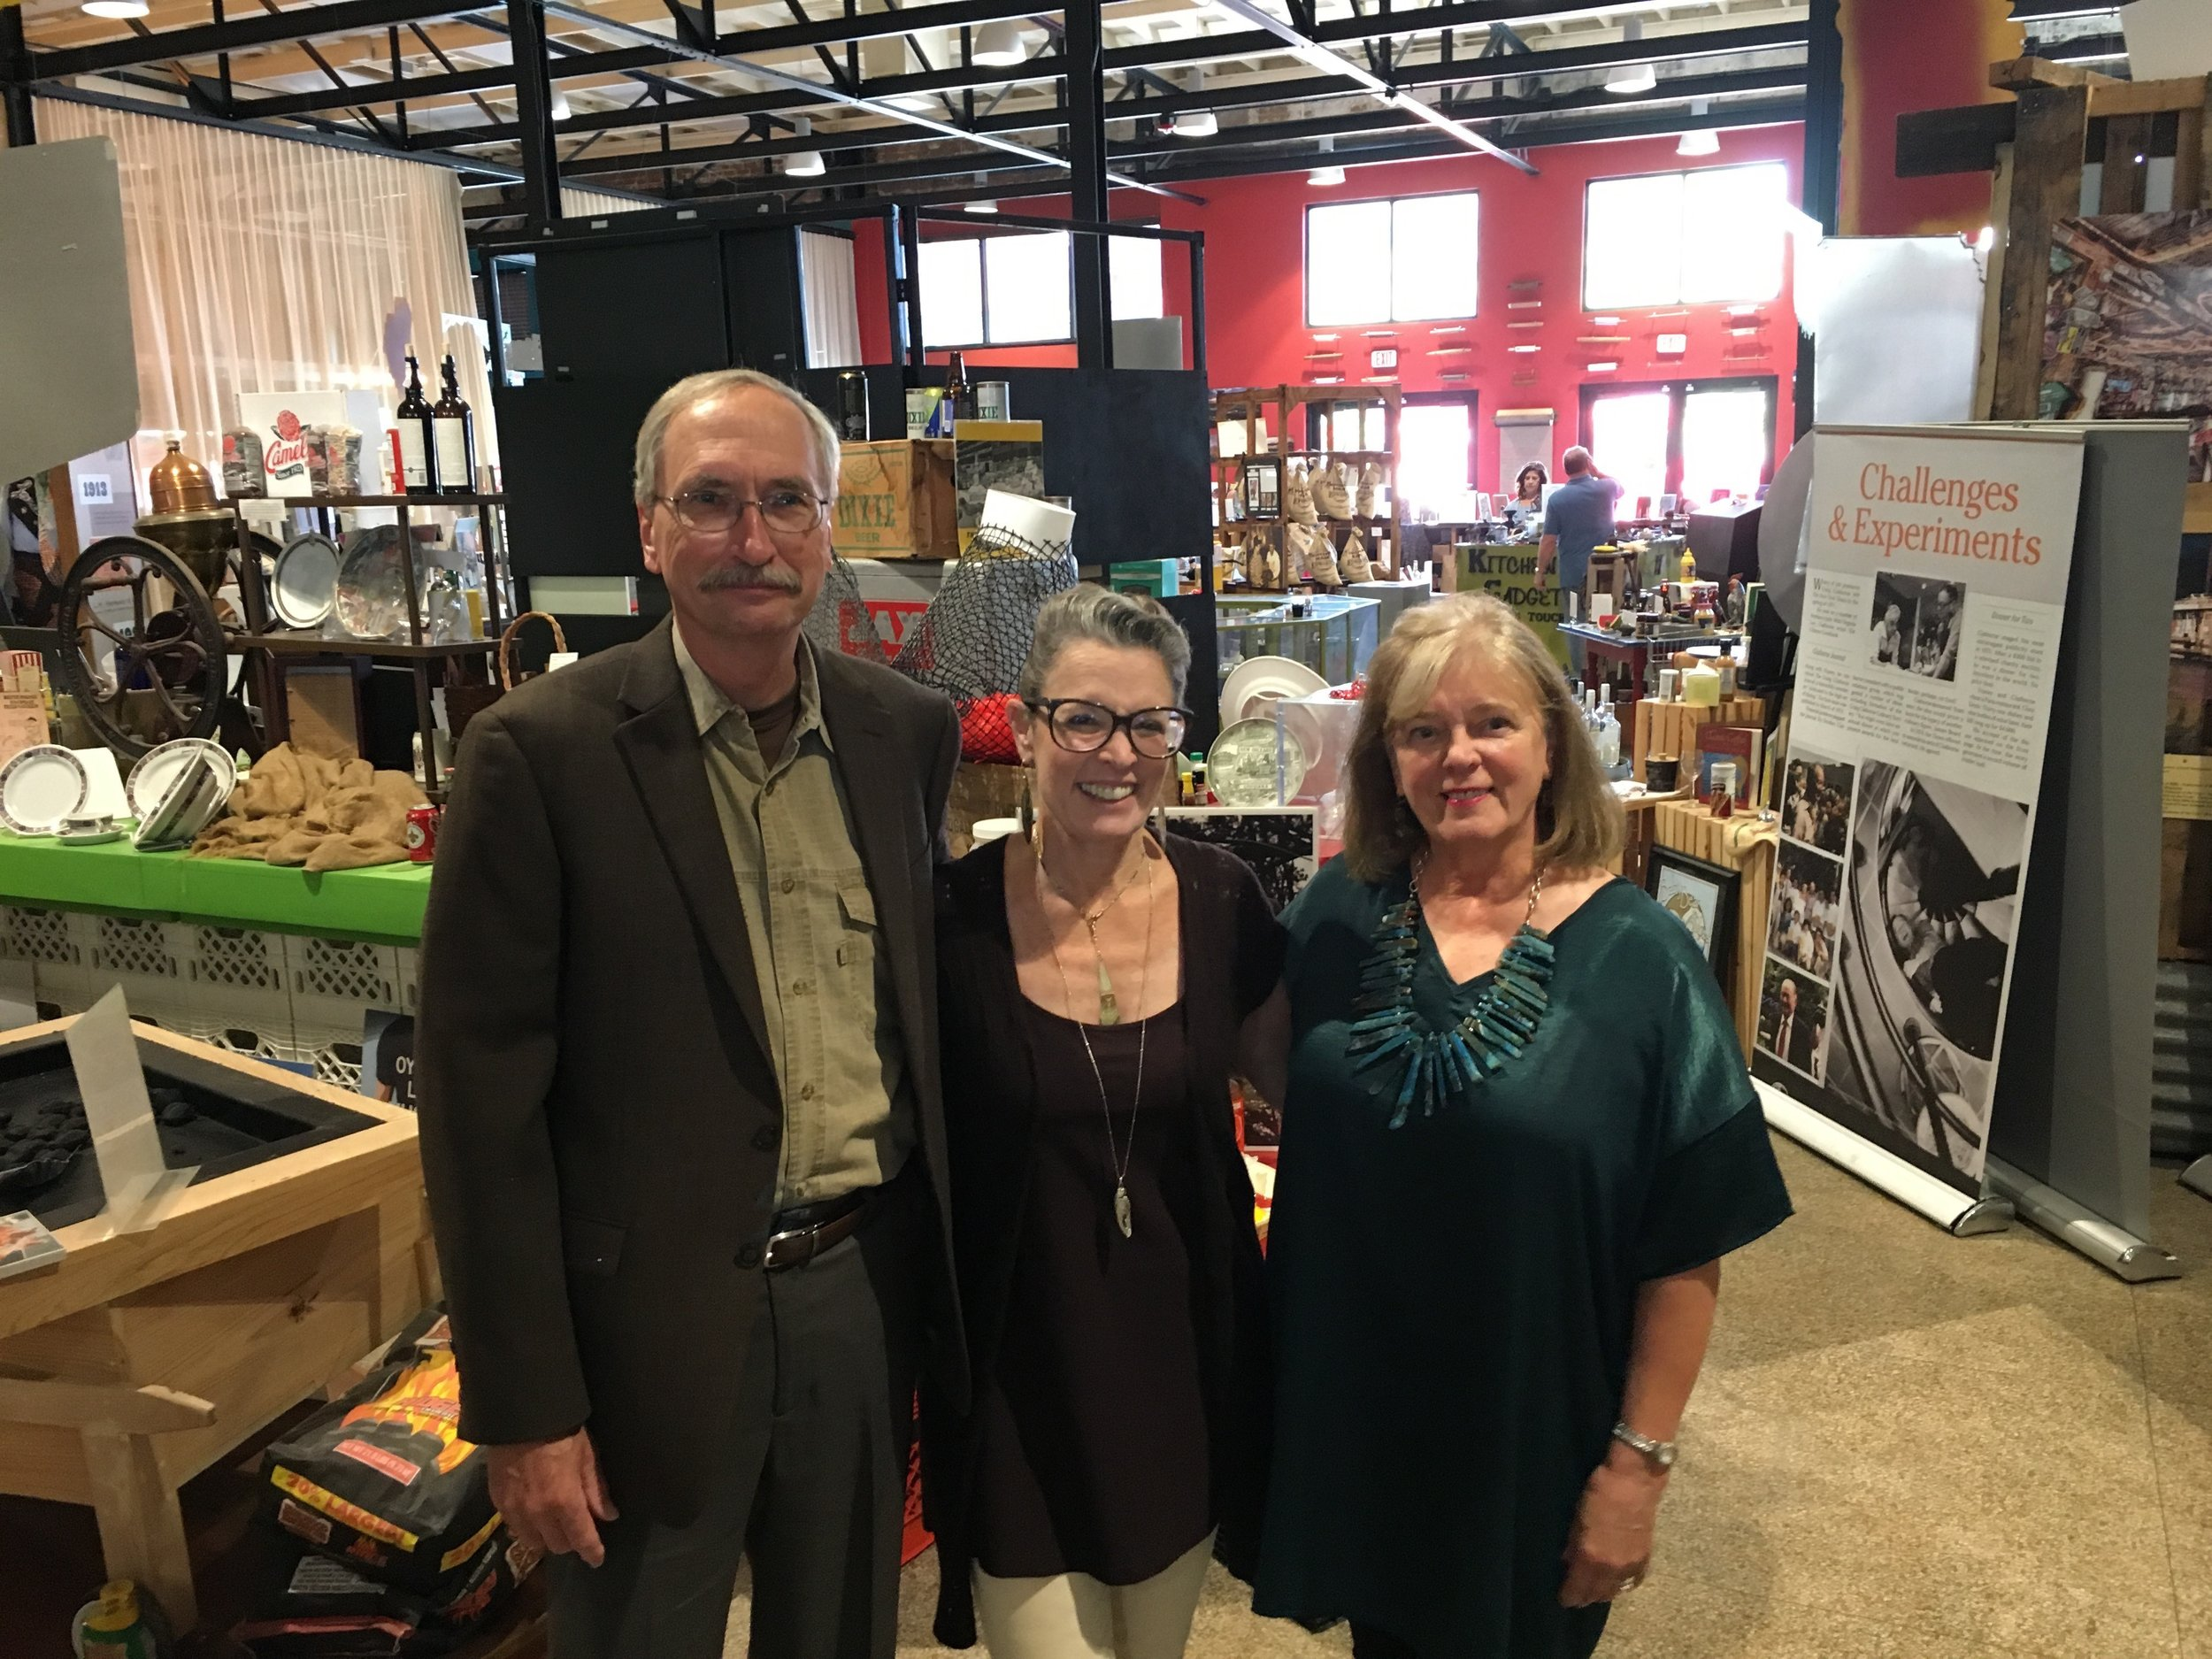 Poppy Tooker with Jim Bruseth and Toni Turner